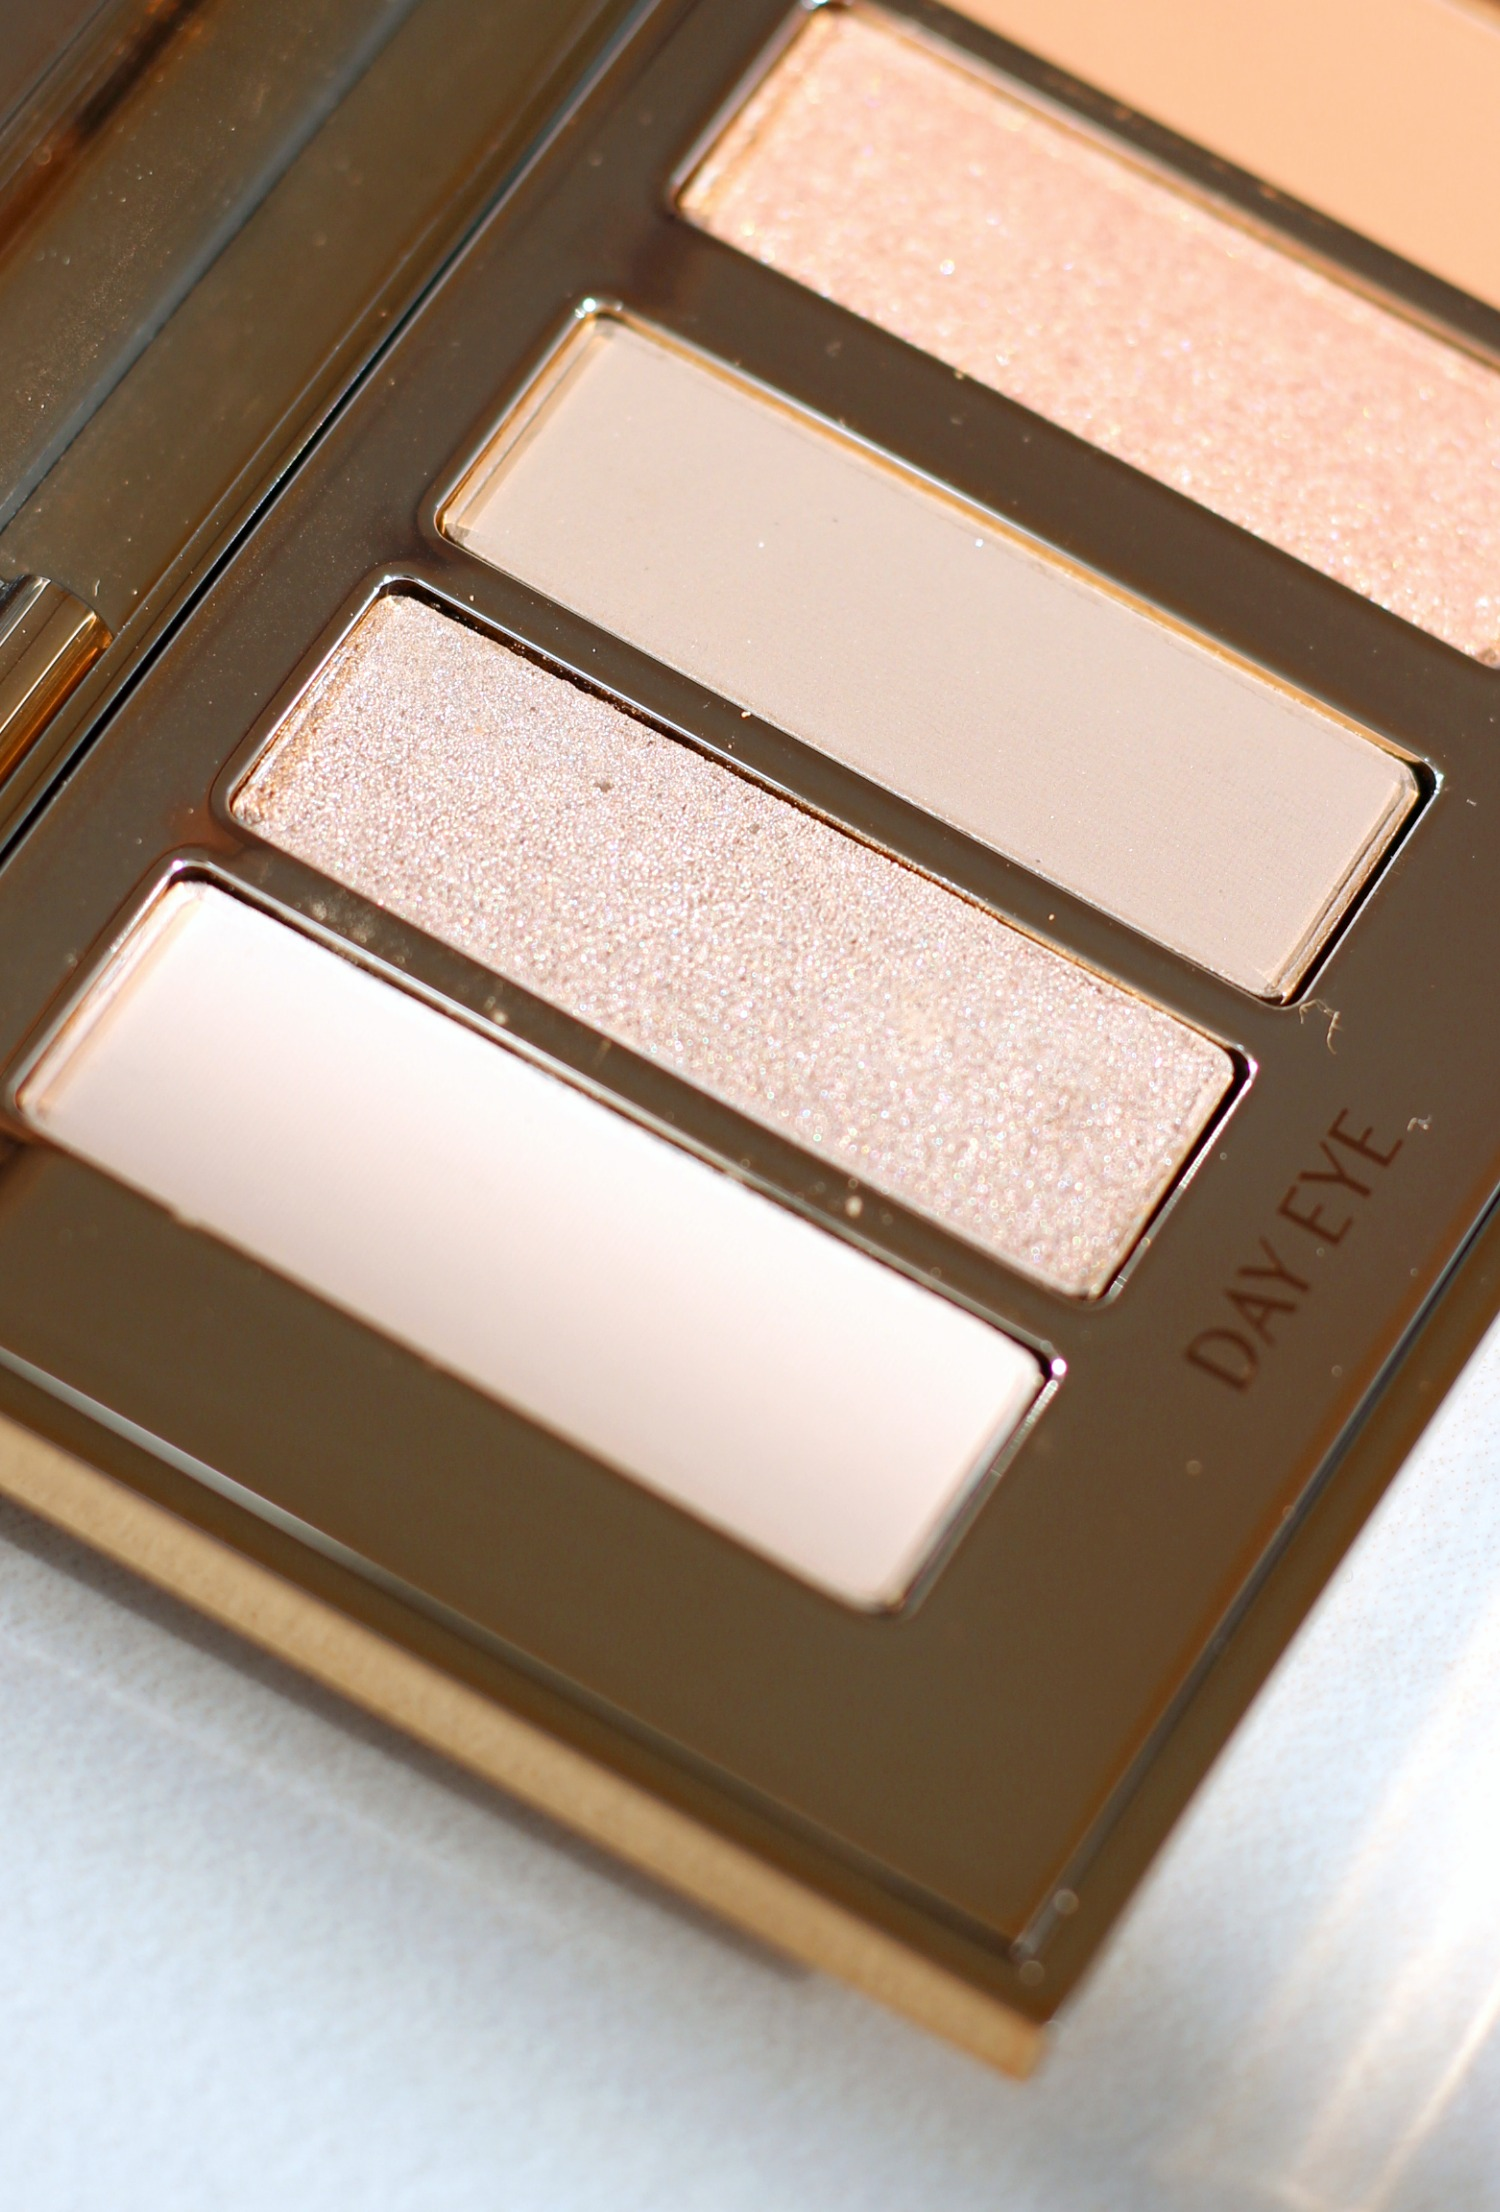 Charlotte Tilbury Instant Eye Palette Review | Close Up Day Eye